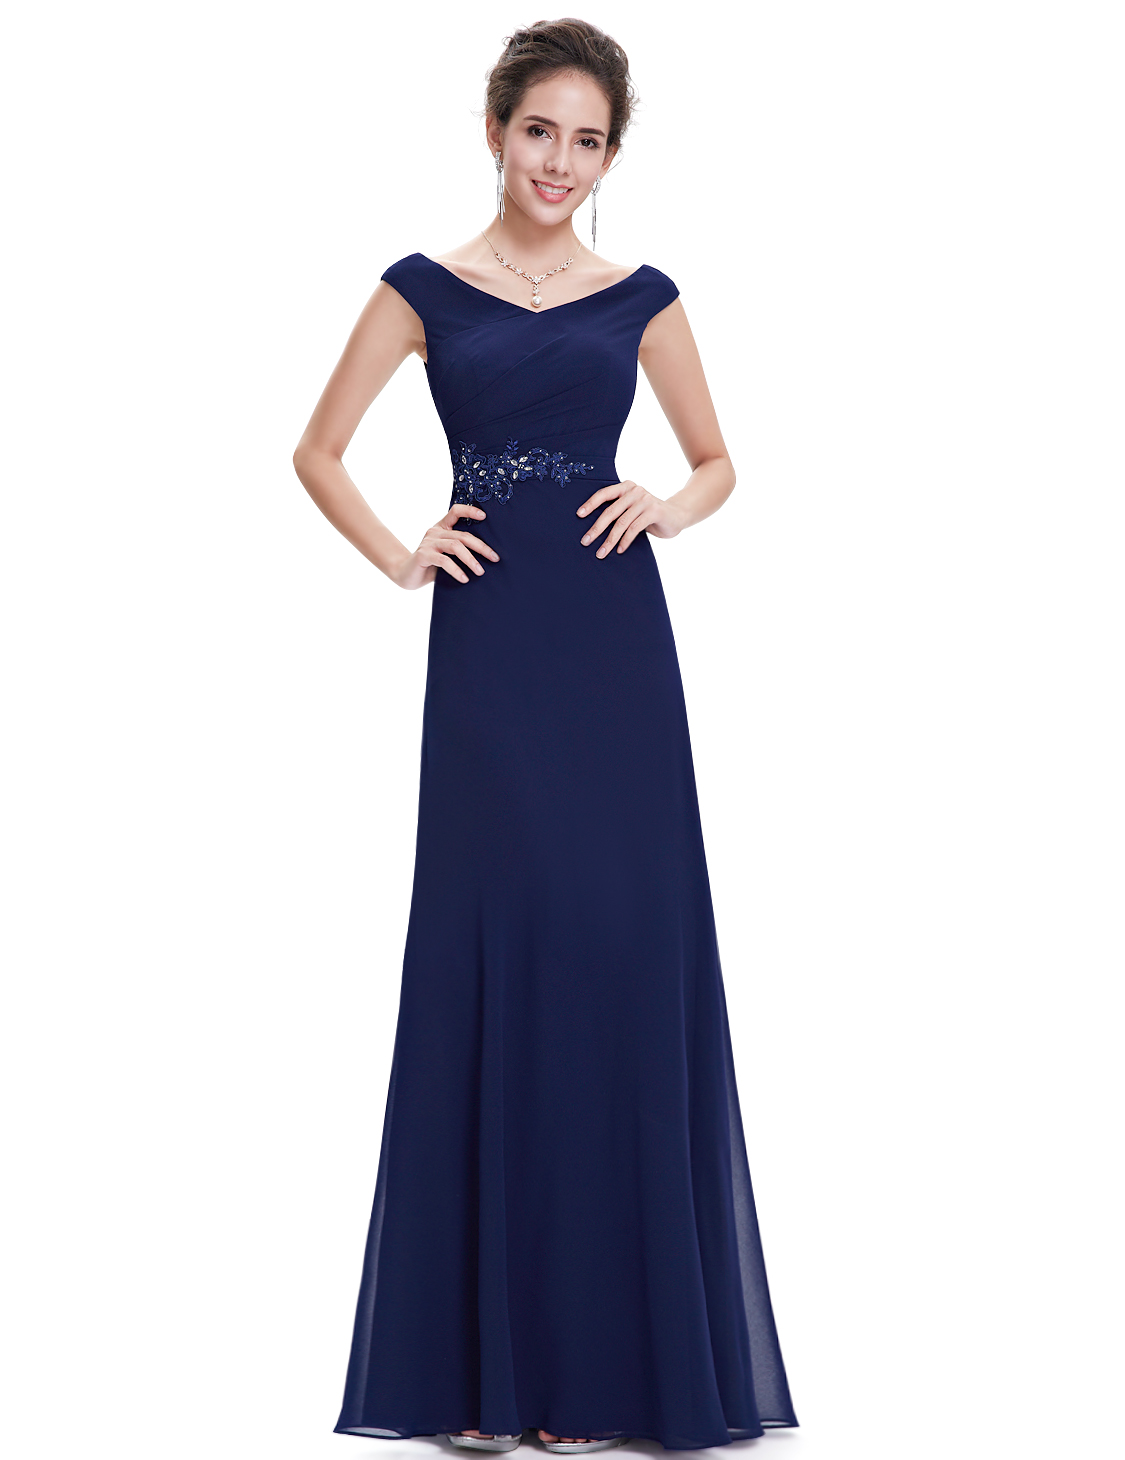 Find navy blue dress from a vast selection of Elegant Dresses for Women. Get great deals on eBay!